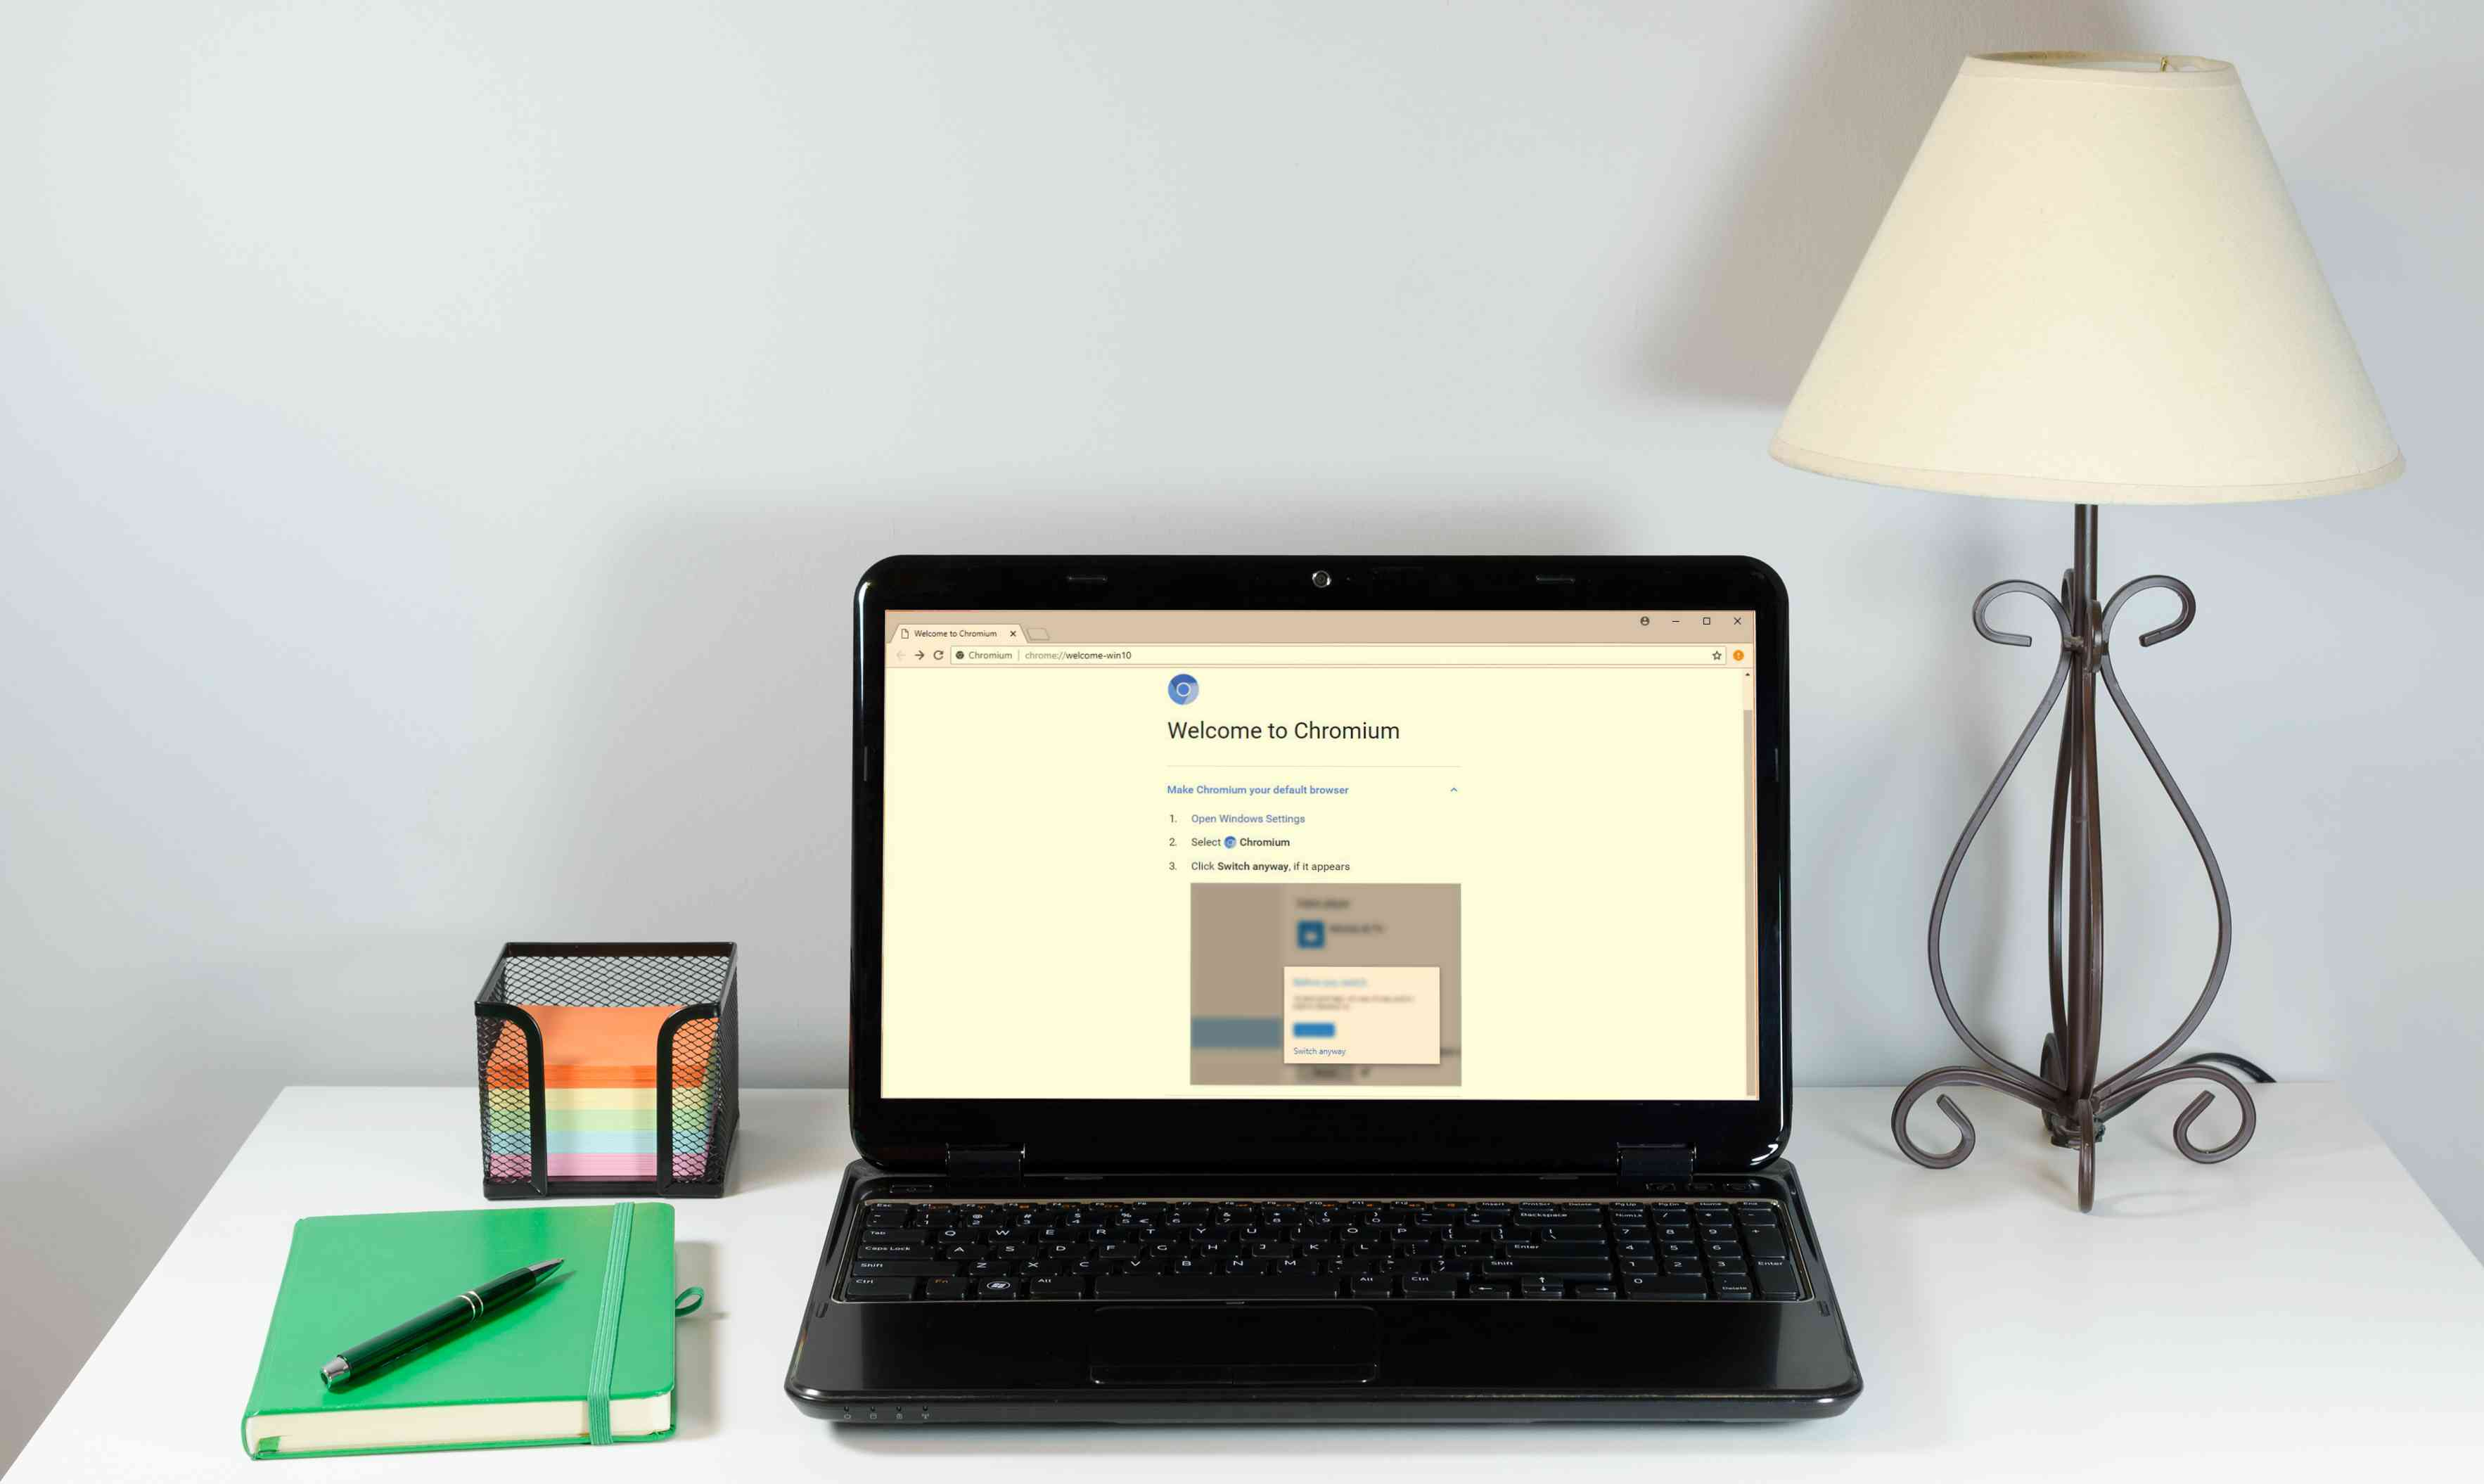 Chromium web browser on a laptop